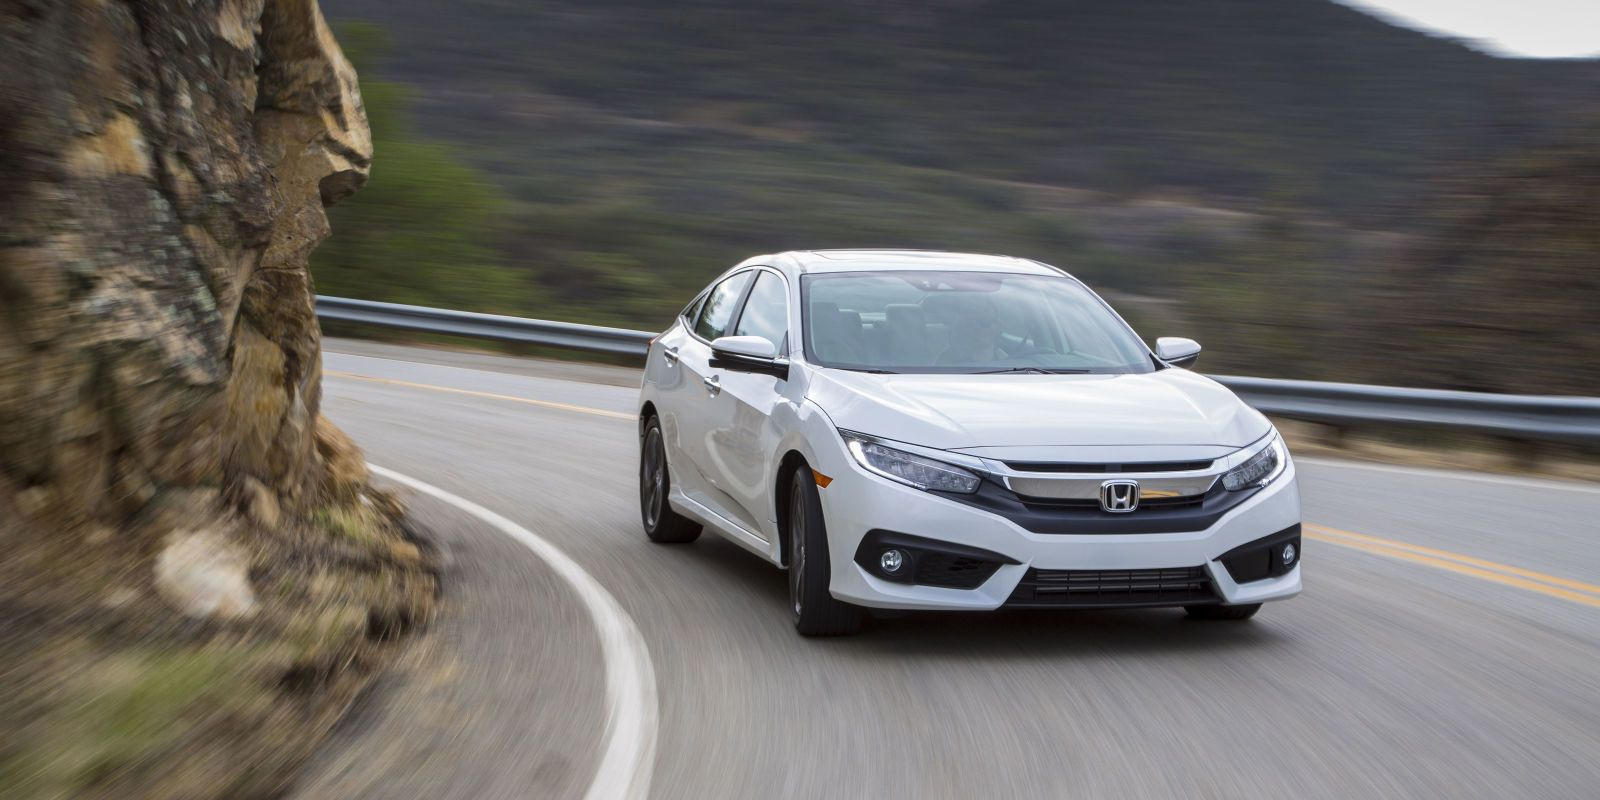 The 2016 Honda Civic Is A Surprising Return To The Fun Civics Of